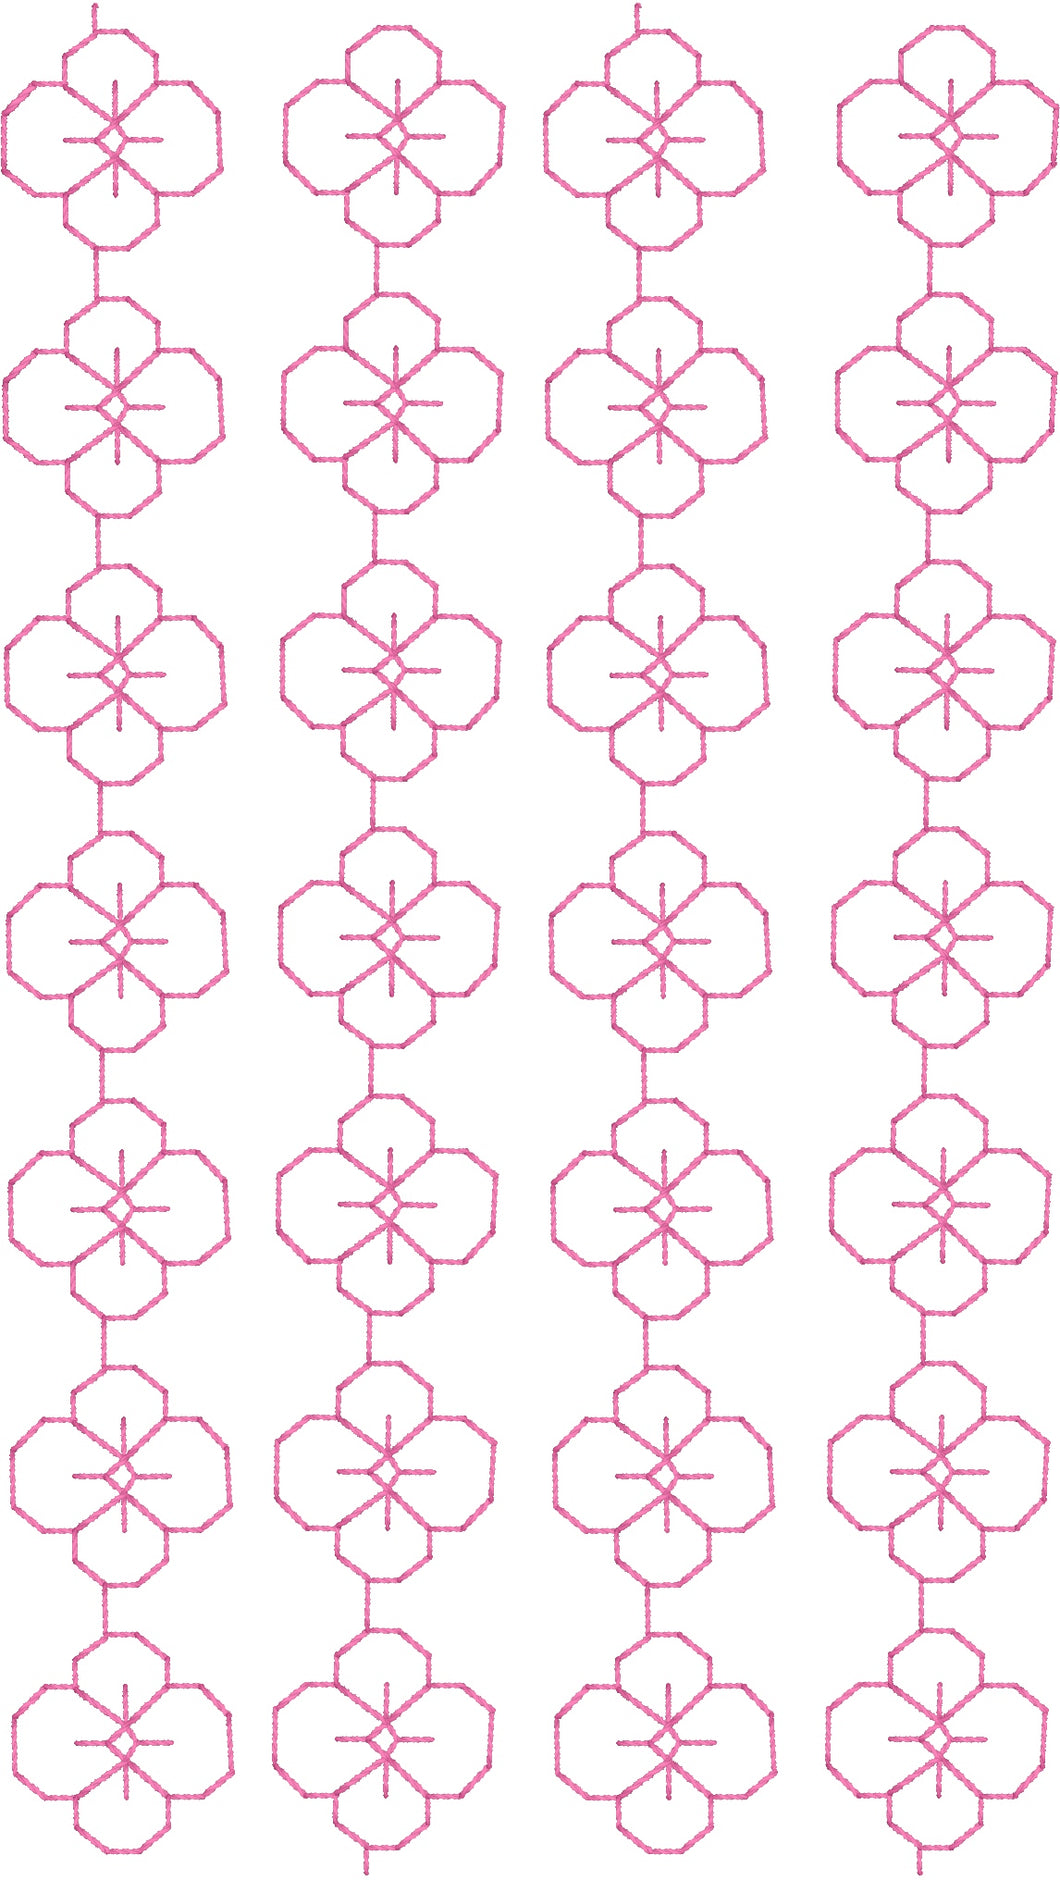 Embroidery Quilting Design - Flower Allover - Machine Embroidery - Machine Quilting - 5x7 Hoop - 10 Formats - Instant Download | Beachside Knits N Quilts